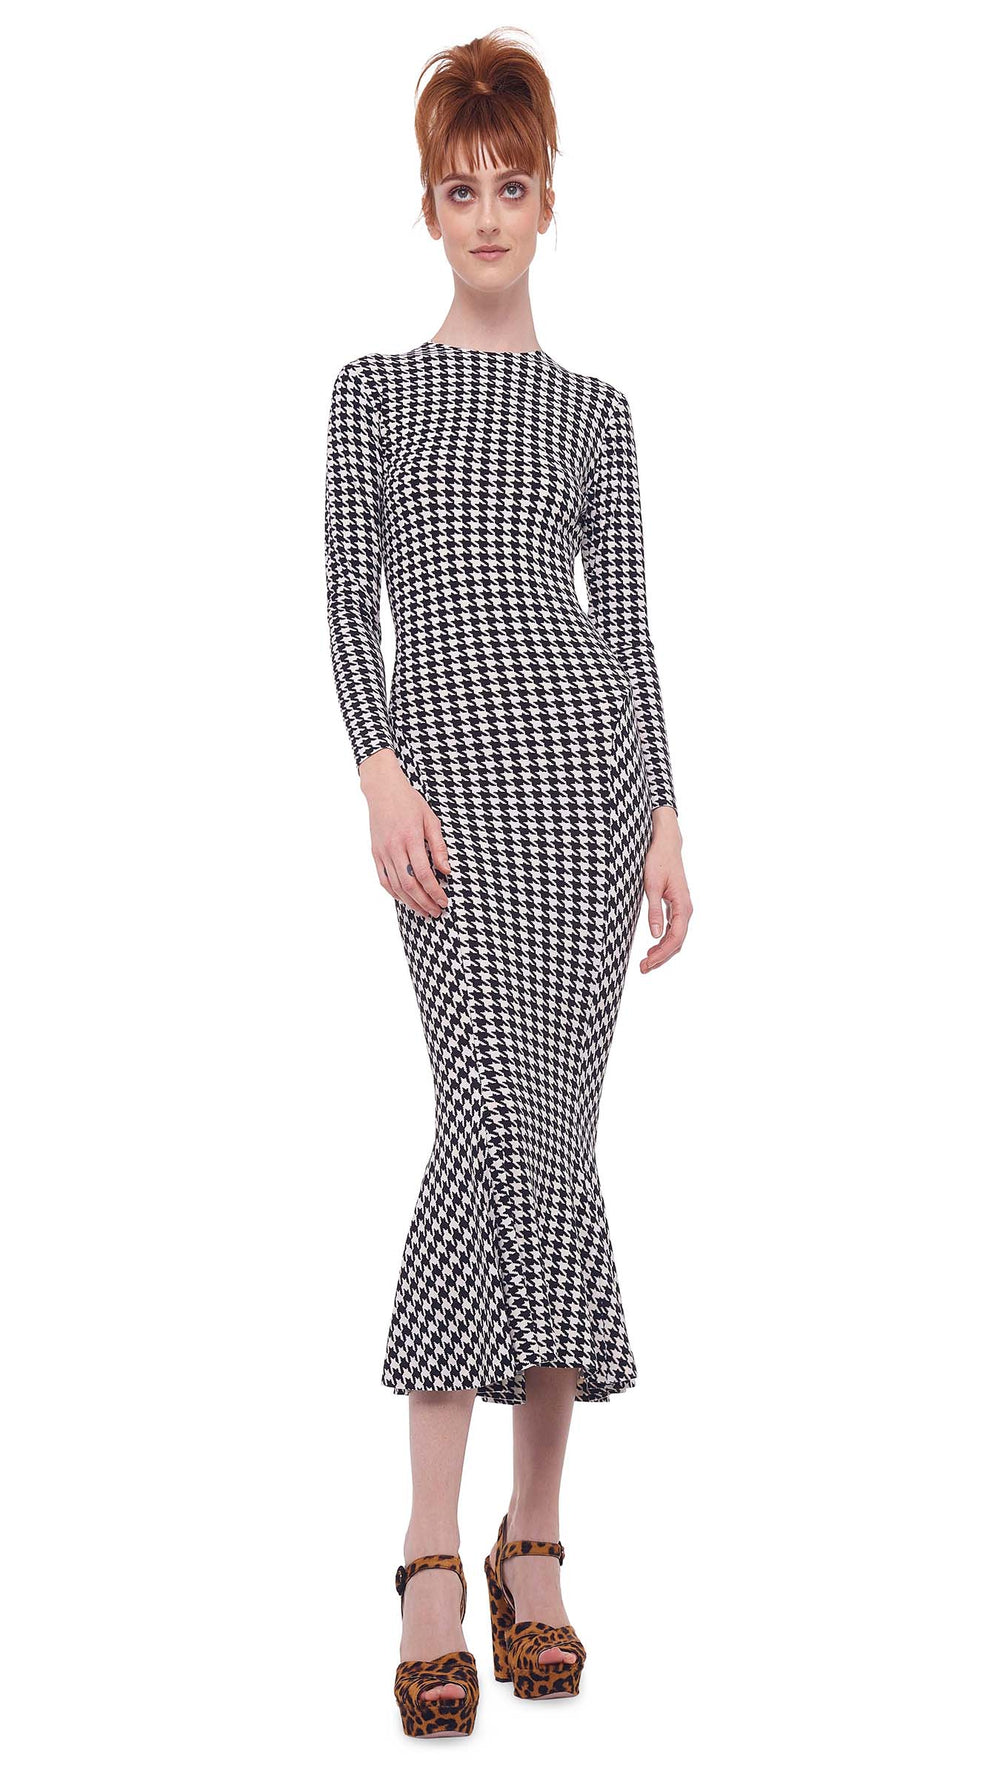 LONG SLEEVE CREW FISHTAIL DRESS TO MIDCALF